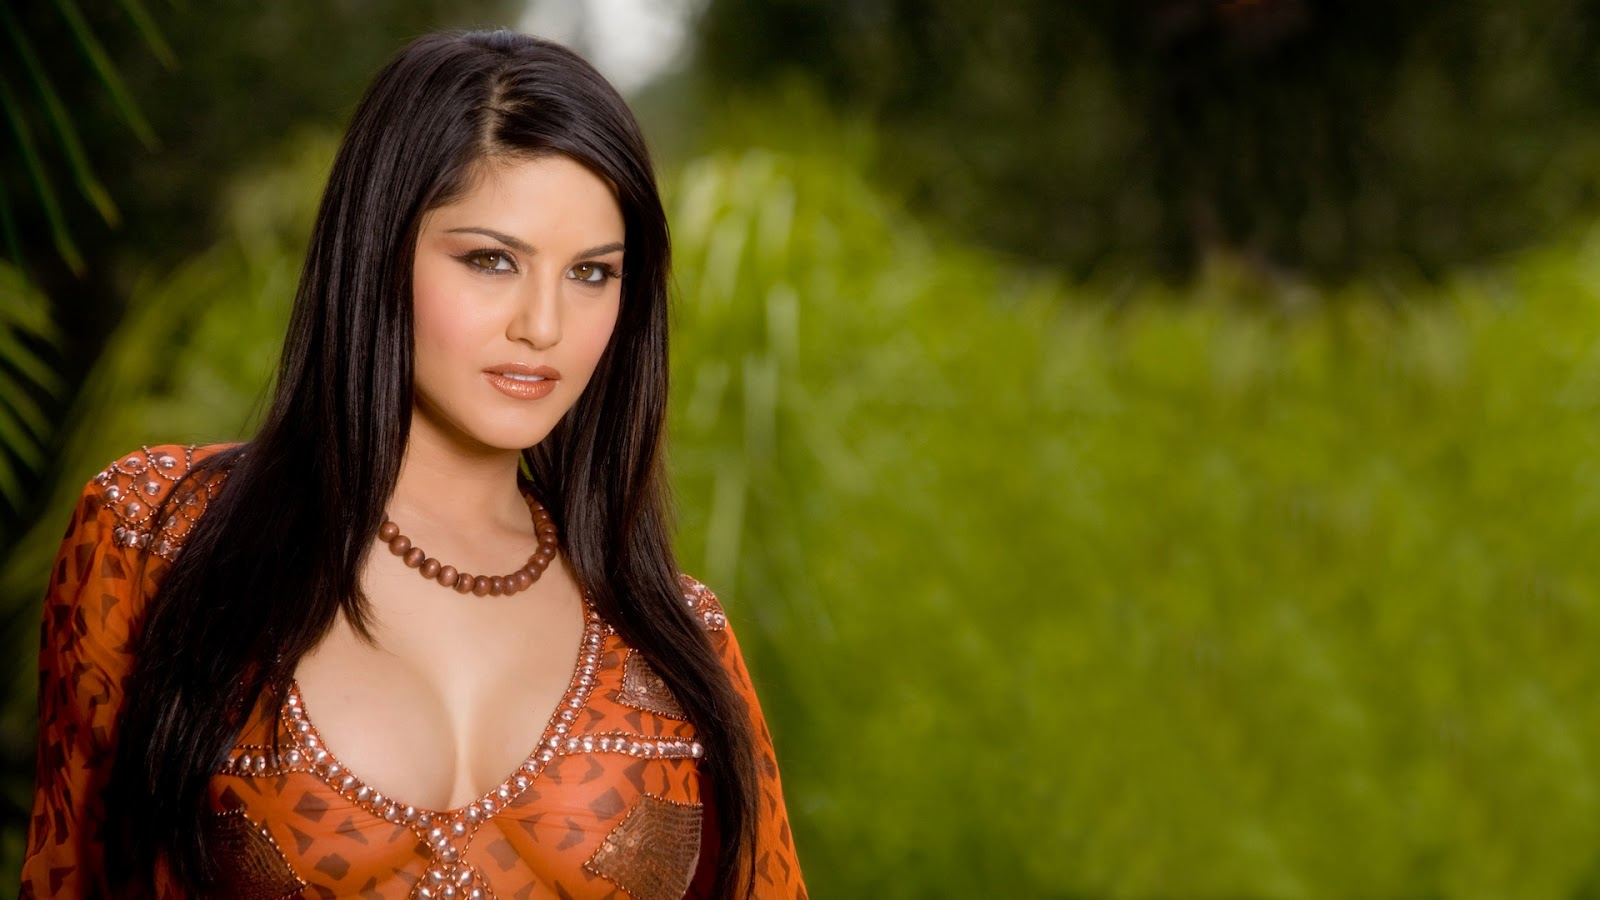 Hot wallpapers: Sunny Leone Non nude Hot Full HD Wallpapers